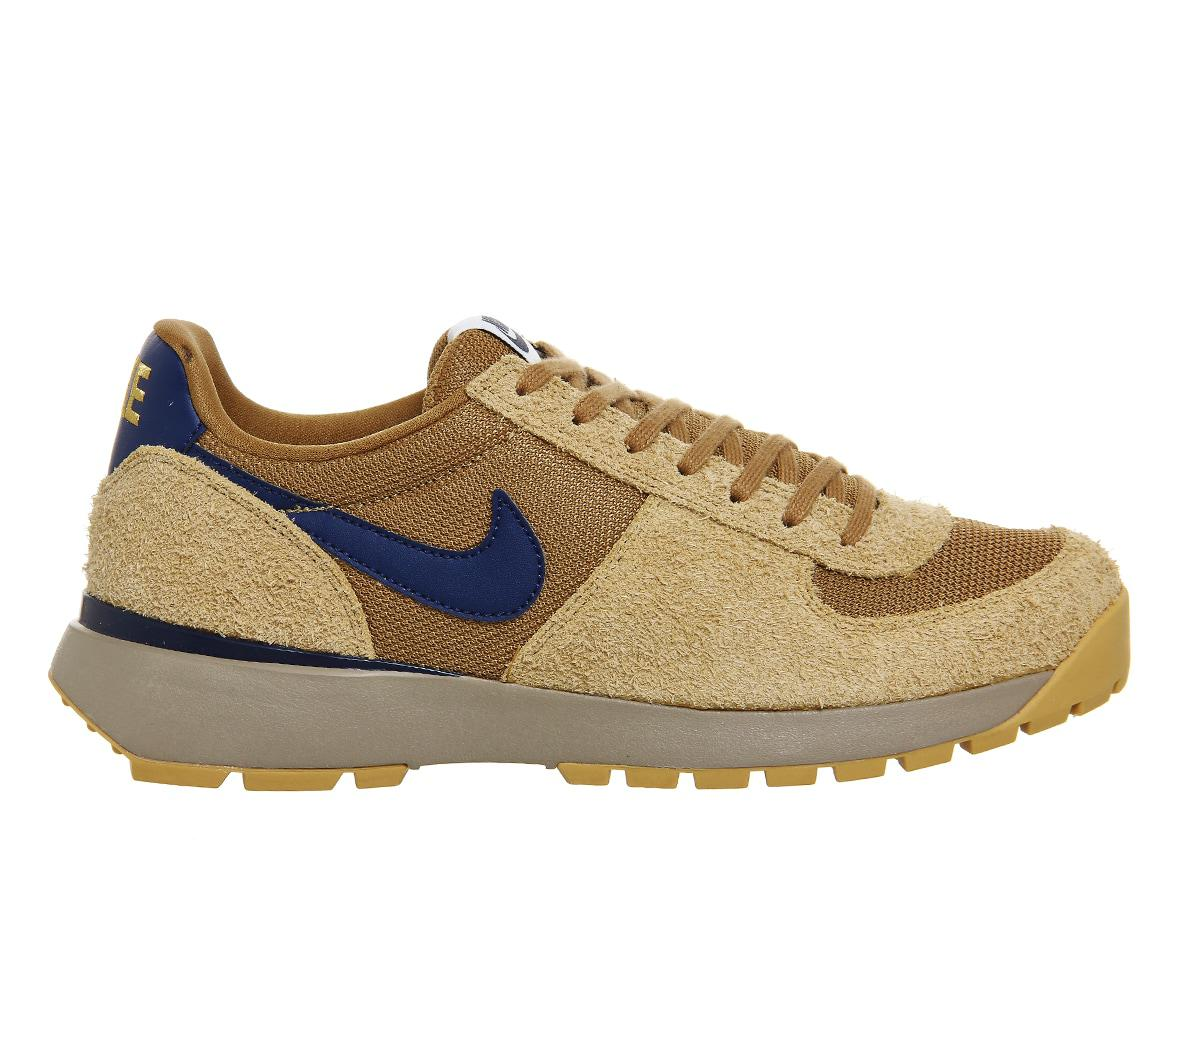 b47baf526b88 Lyst - Nike Lavadome Ultra for Men